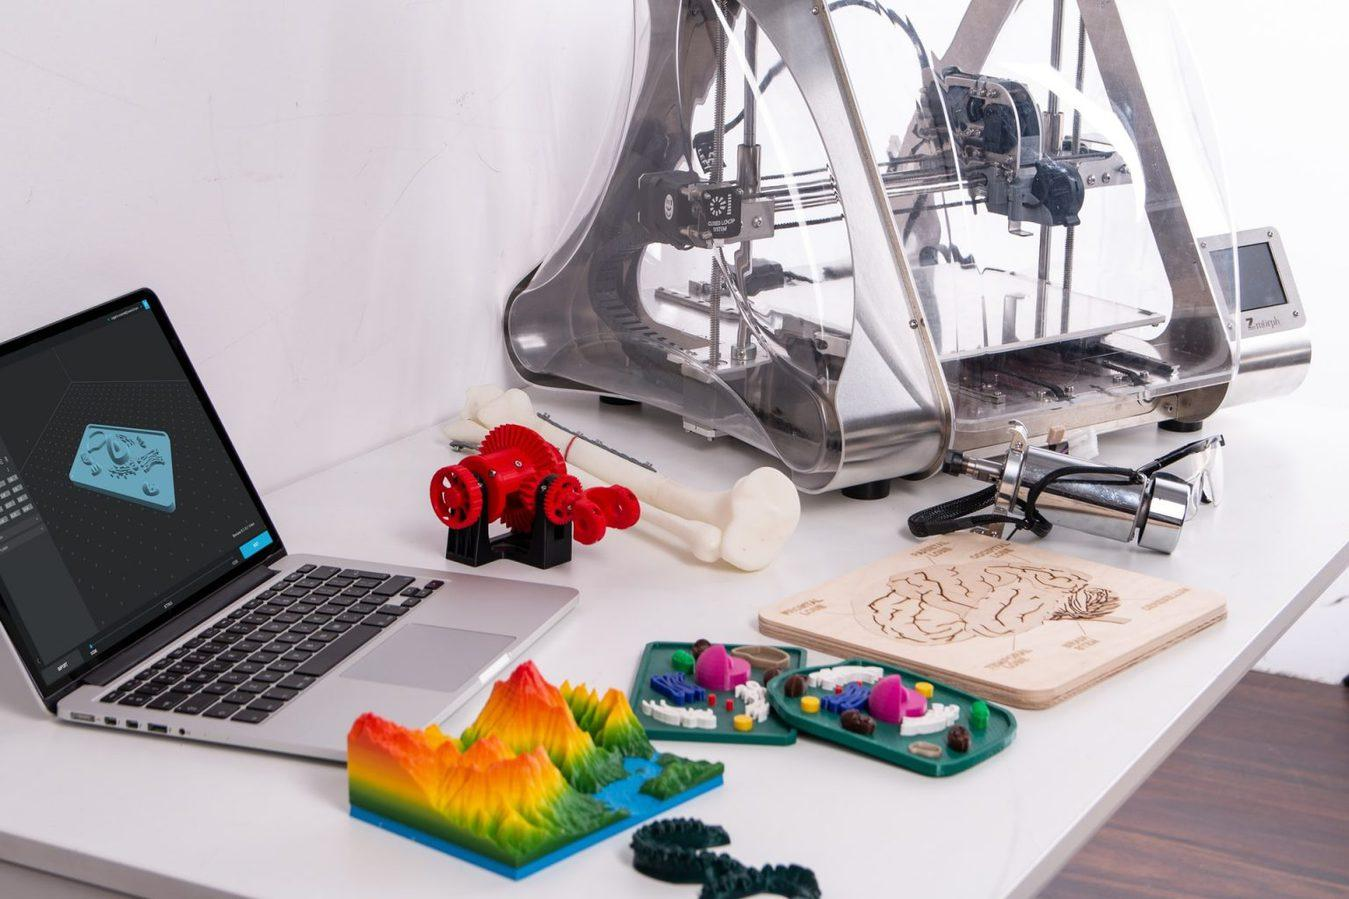 3D Printer Products with Laptop